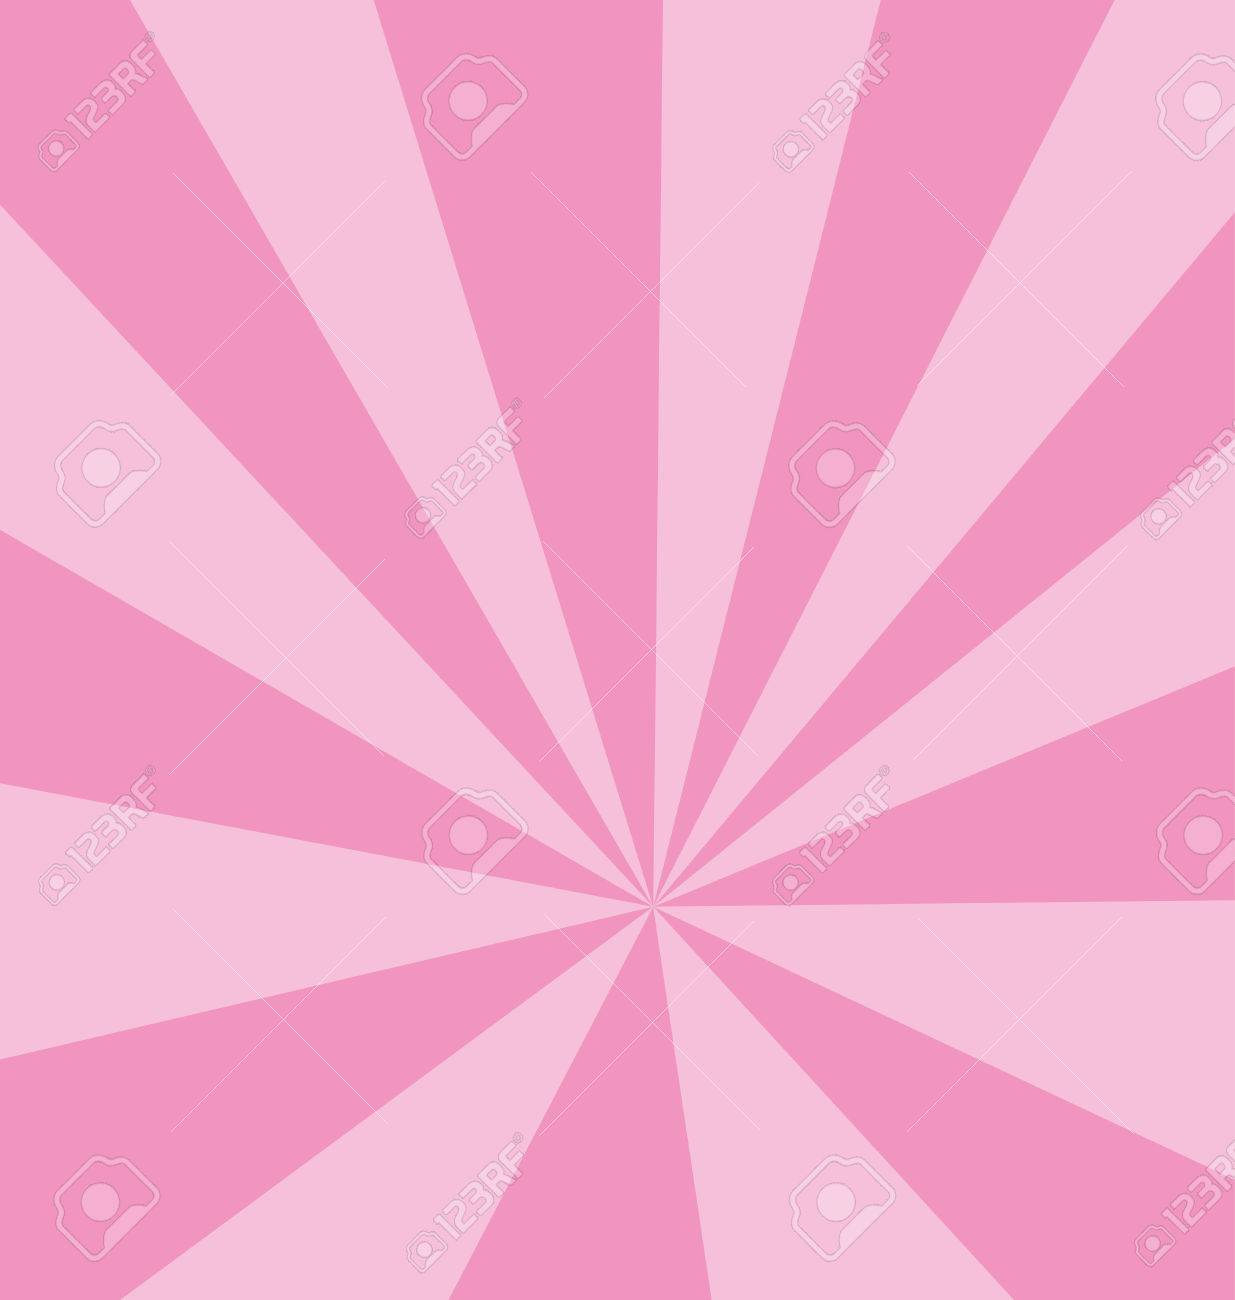 Strips of pink heading to one point creating a template background. Stock Vector - 6903695